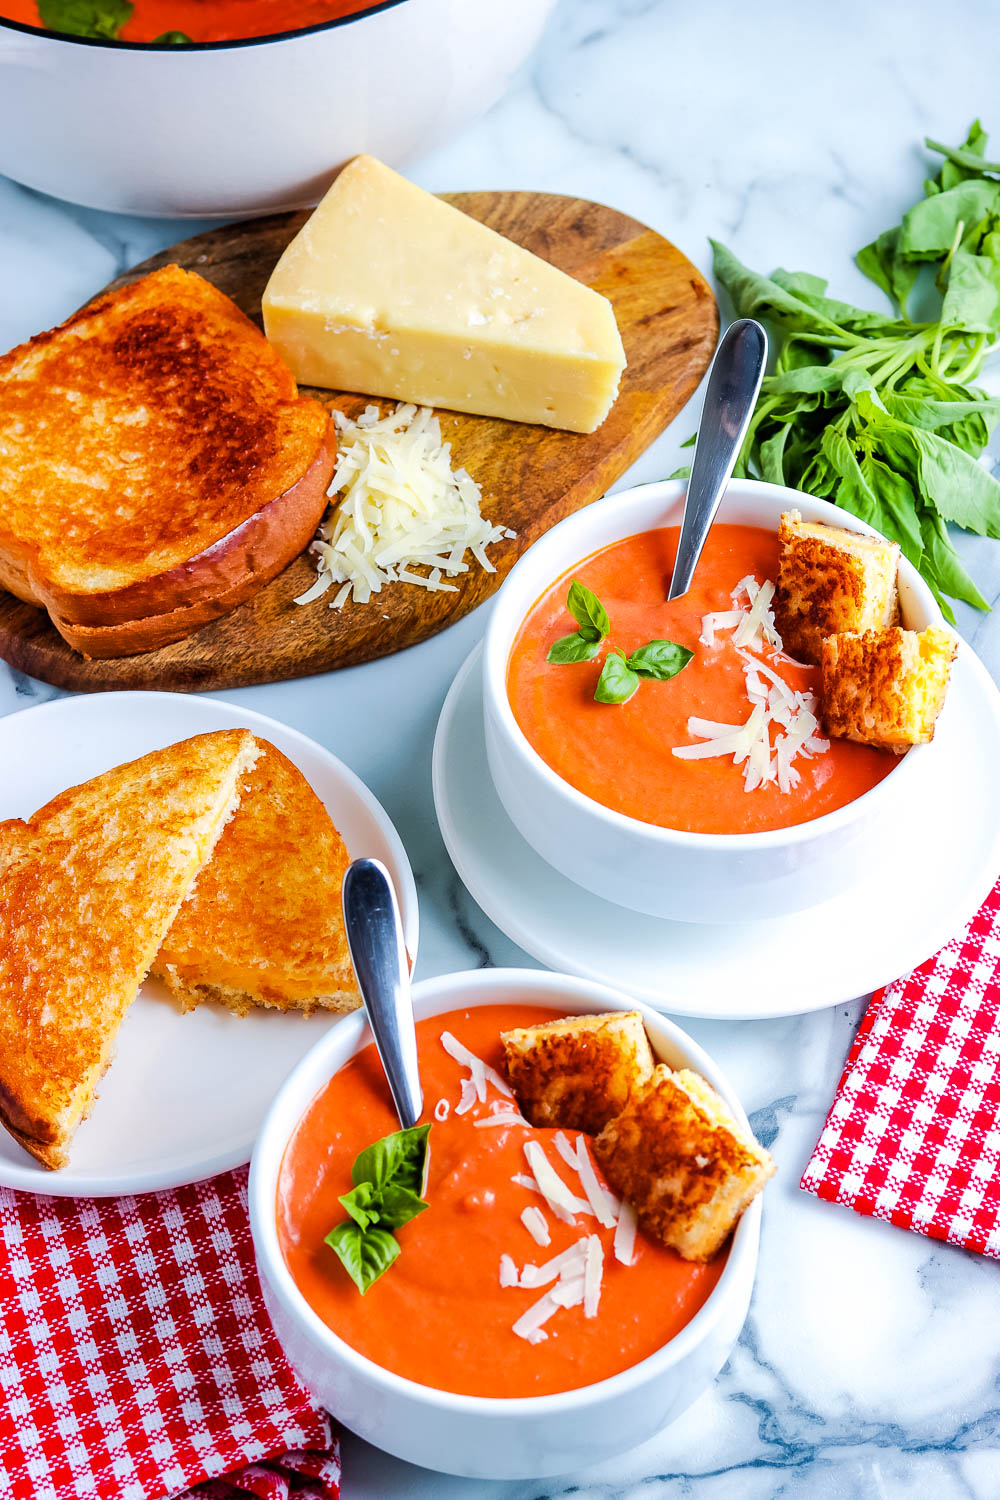 Two bowls of homemade tomato soup with grilled cheese sandwiches.